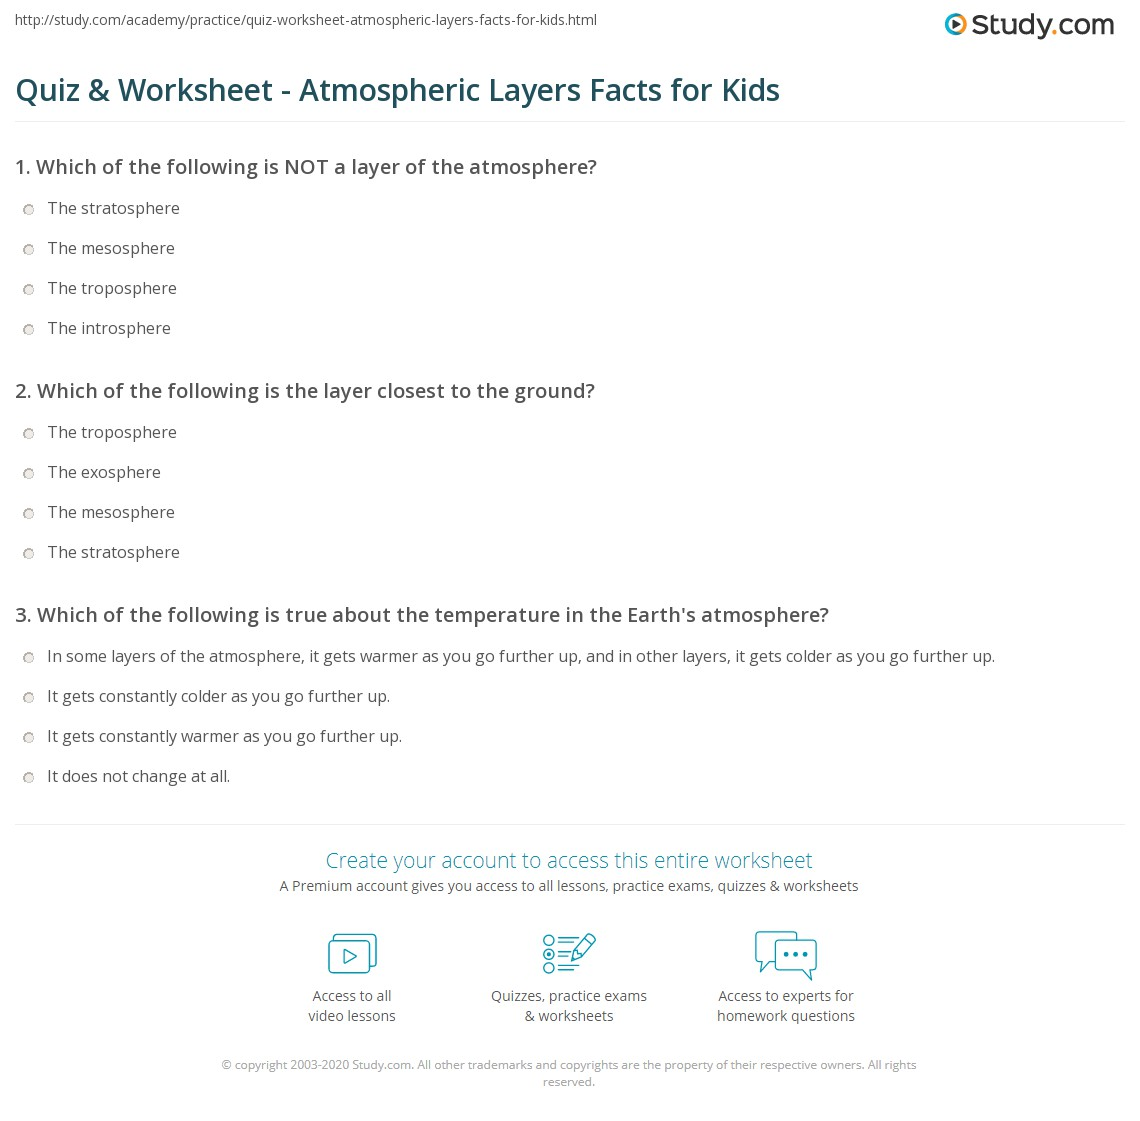 Quiz Worksheet Atmospheric Layers Facts For Kids